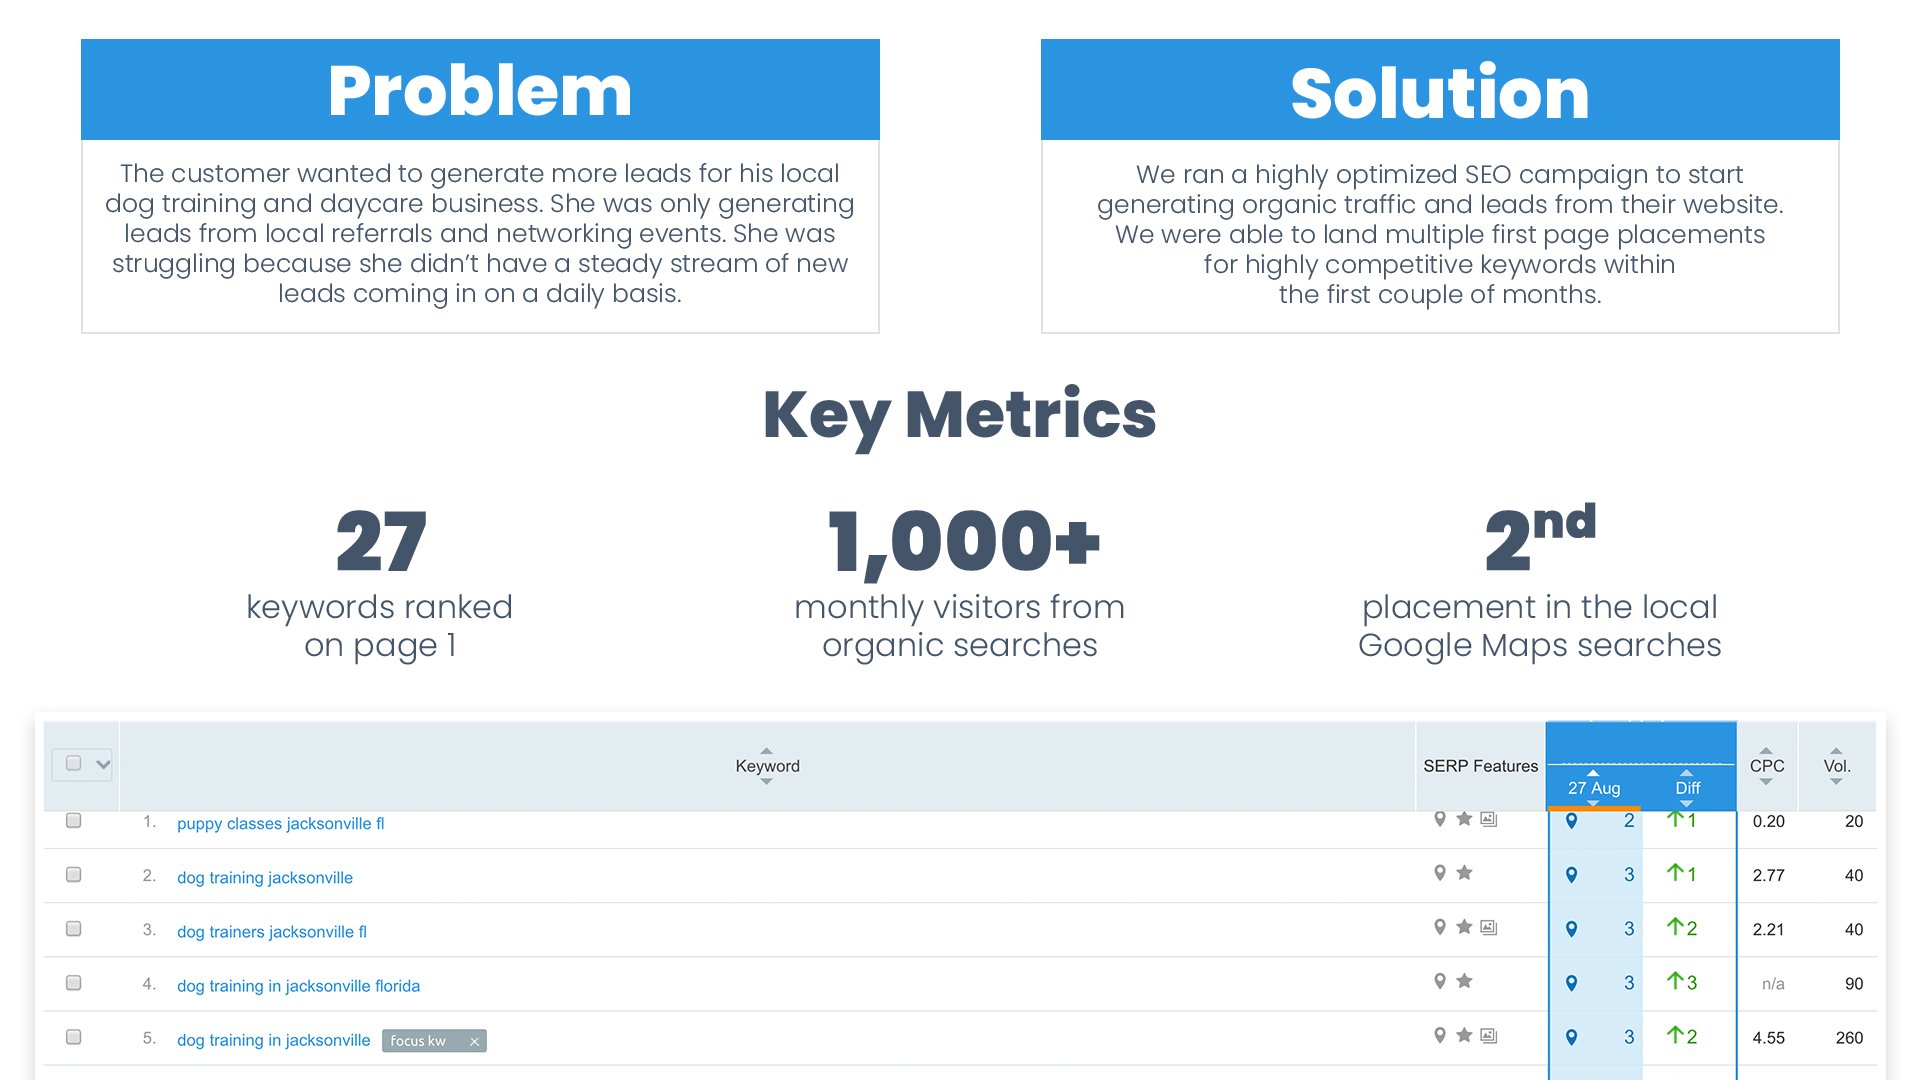 Page 2 Case Study for analyzing key performance factors for Search Engine Optimization